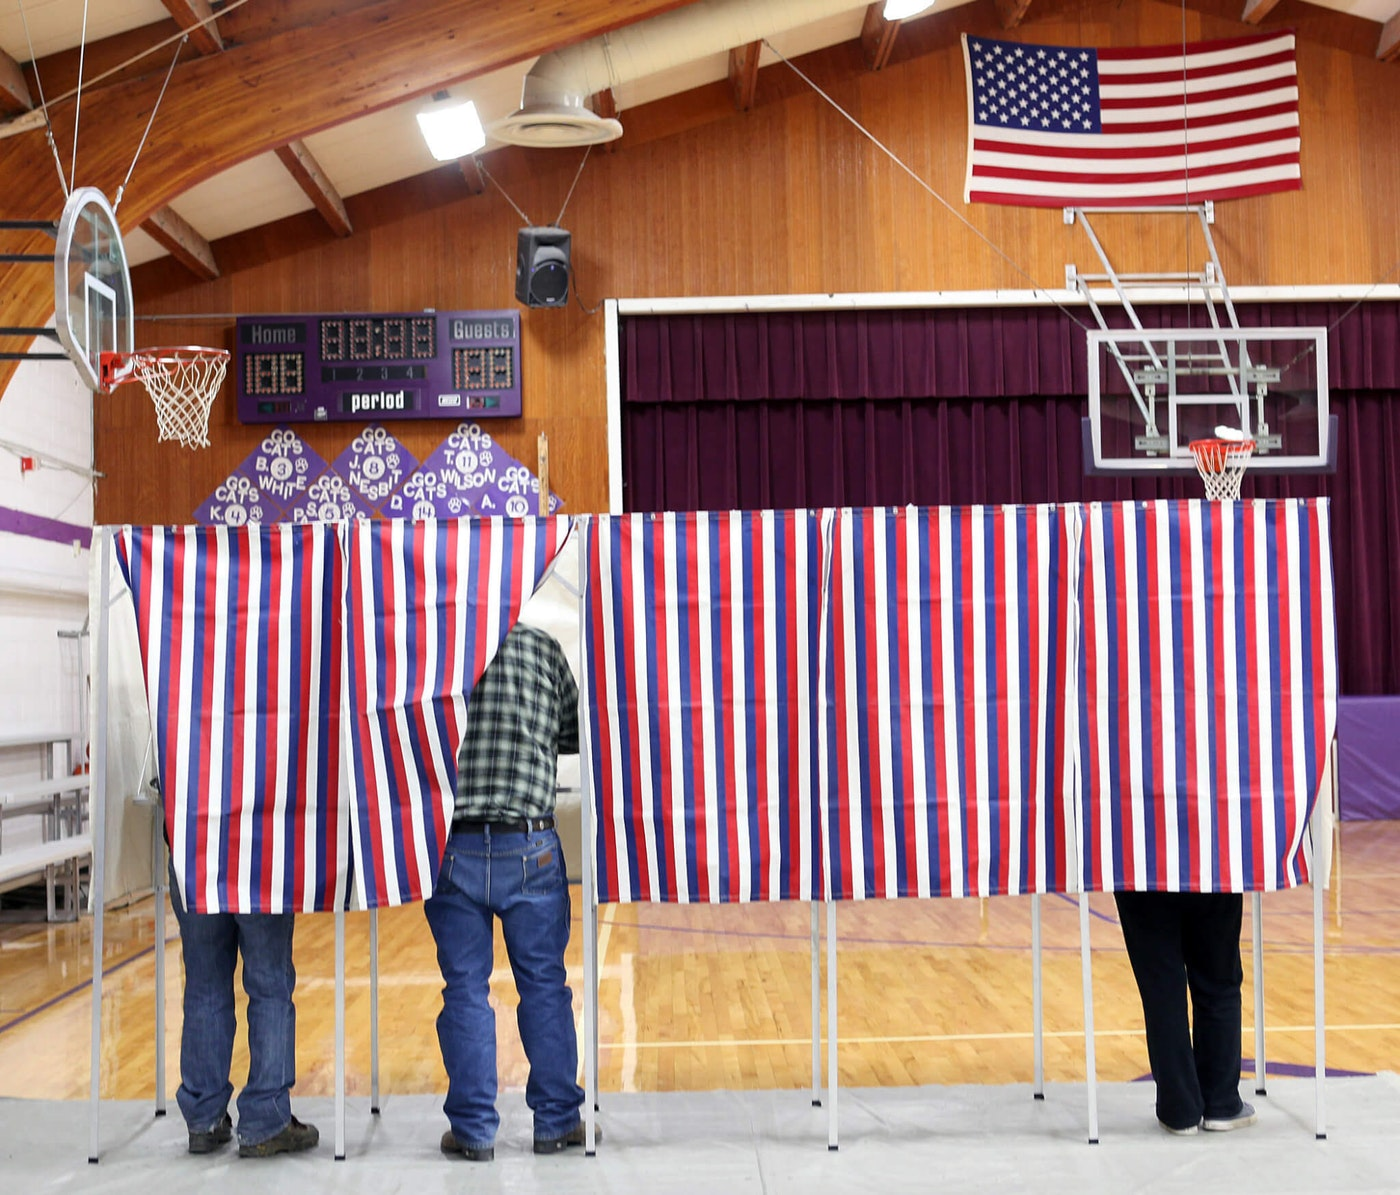 Voters cast their Election Day ballots at a rural high school (AP Photo/Janie Osborne)